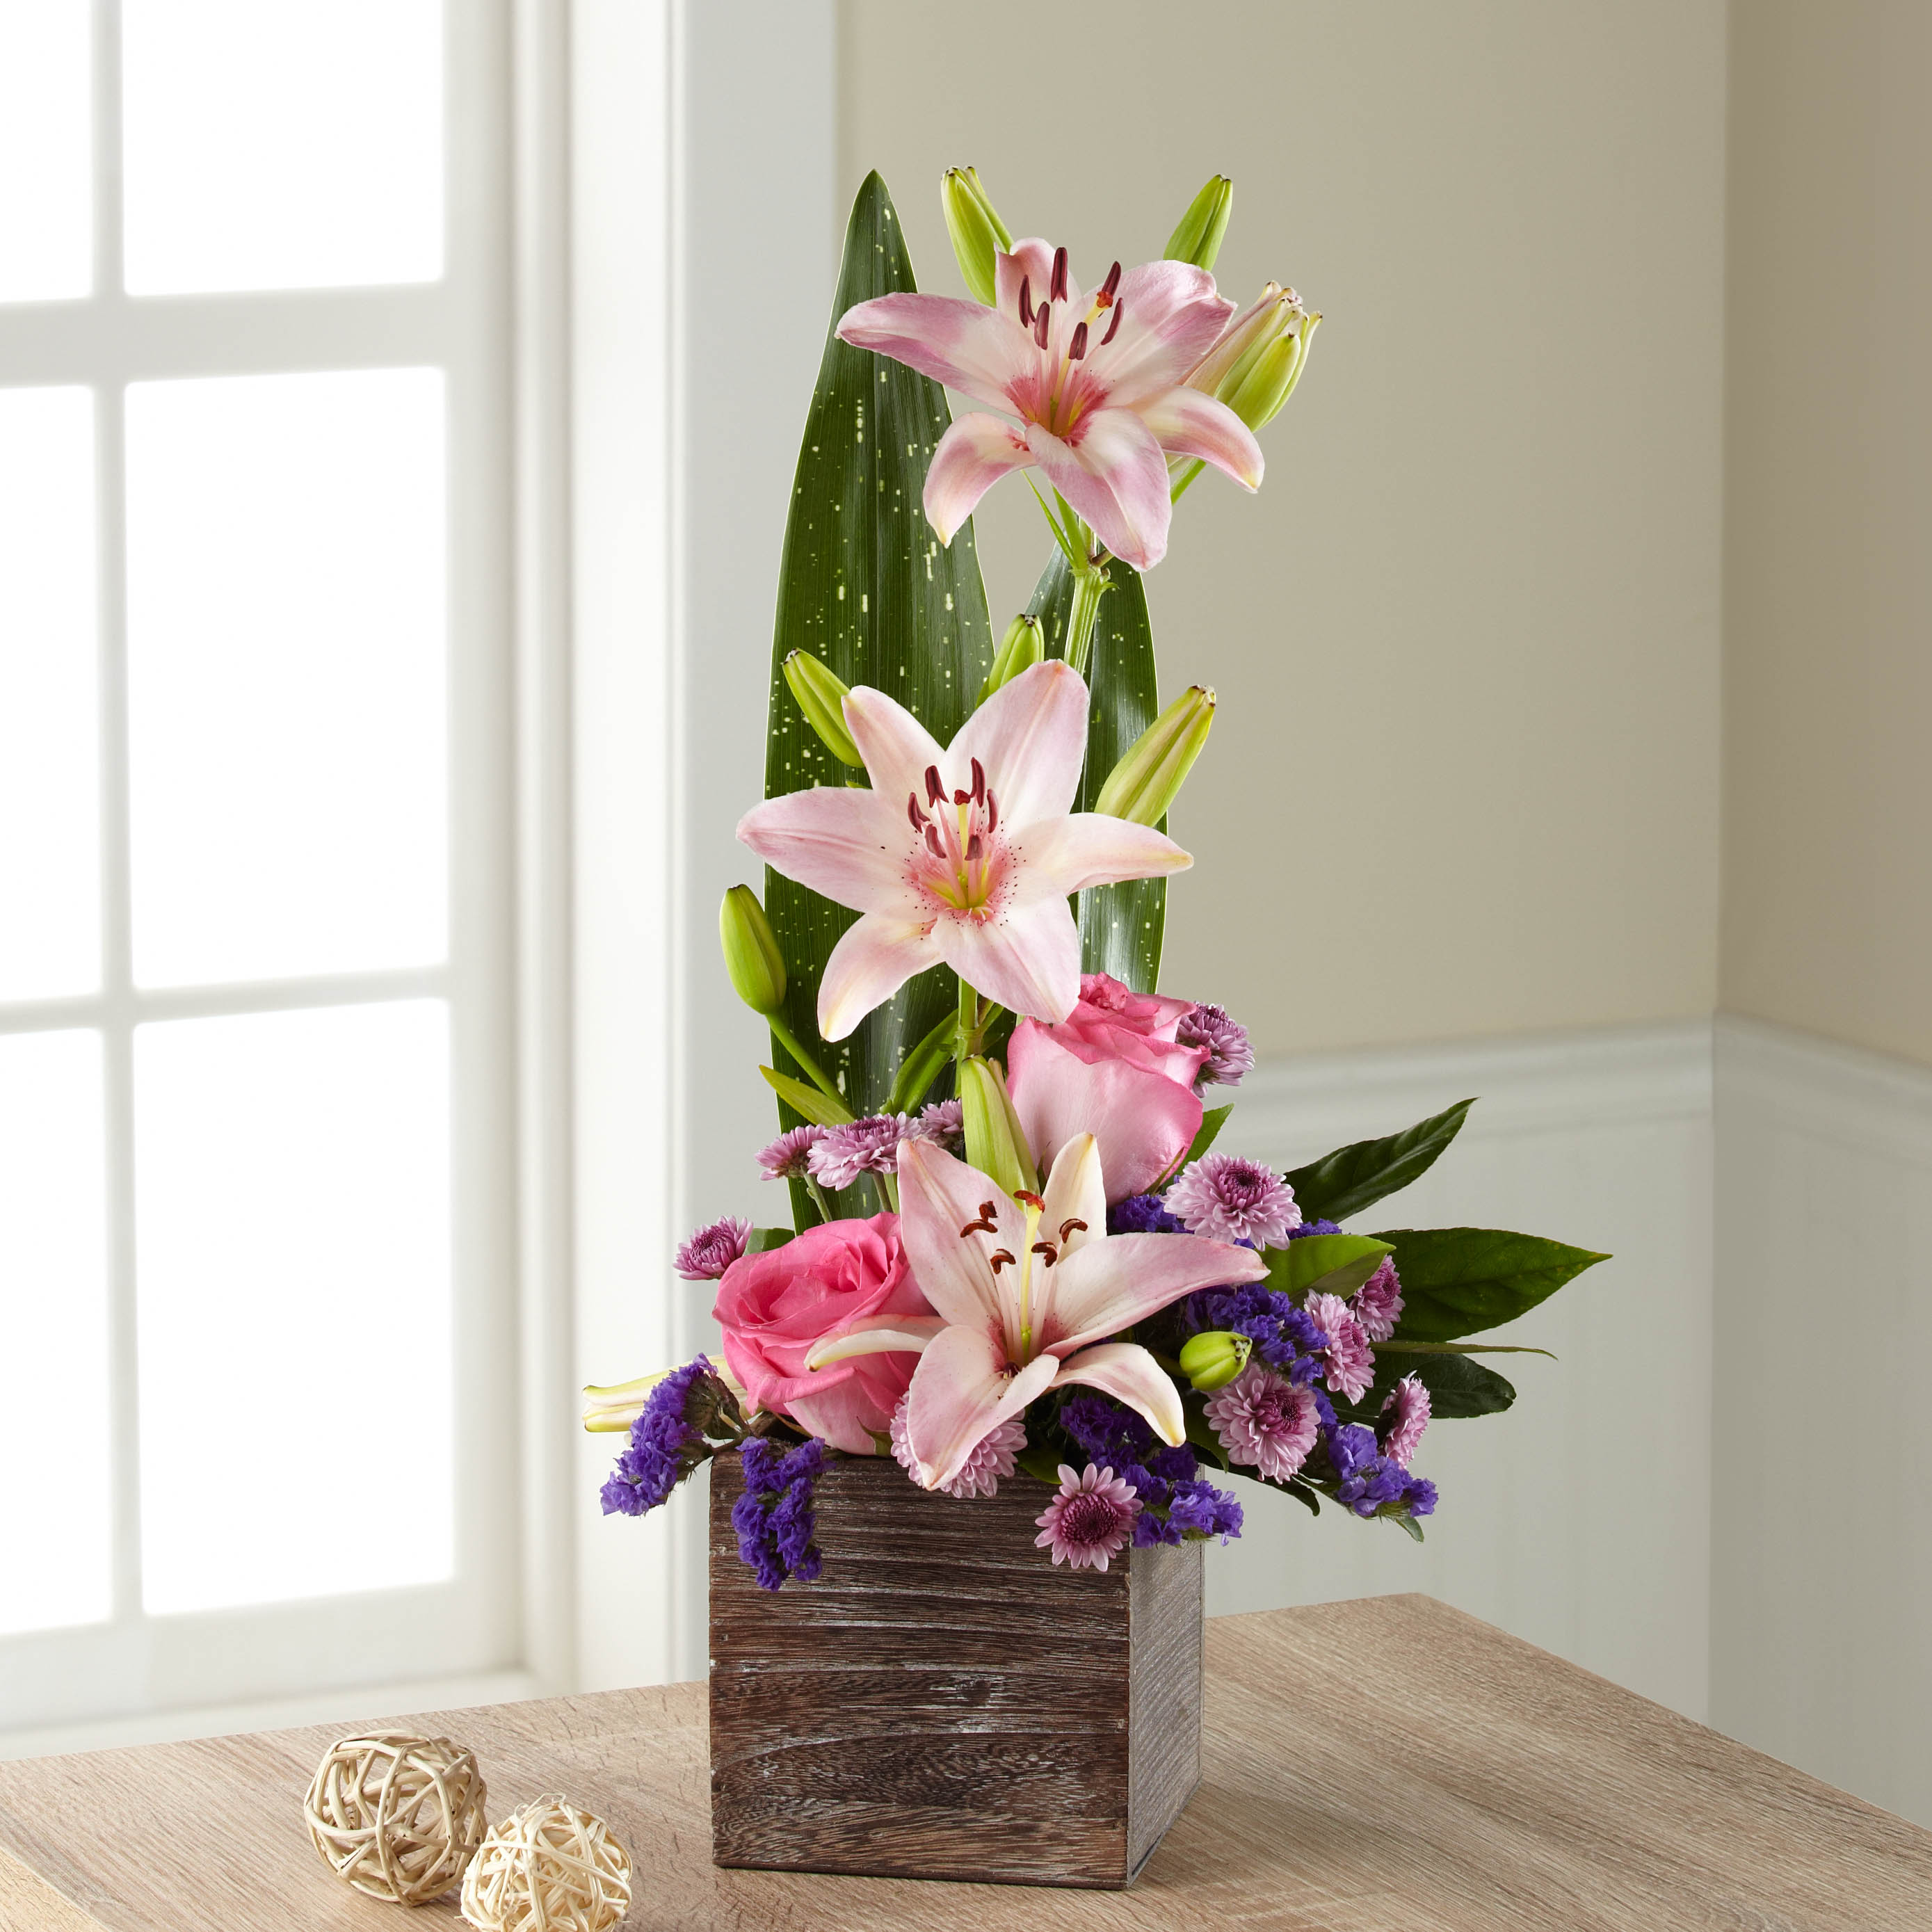 The ftd simple perfection bouquet b23 5149 izmirmasajfo